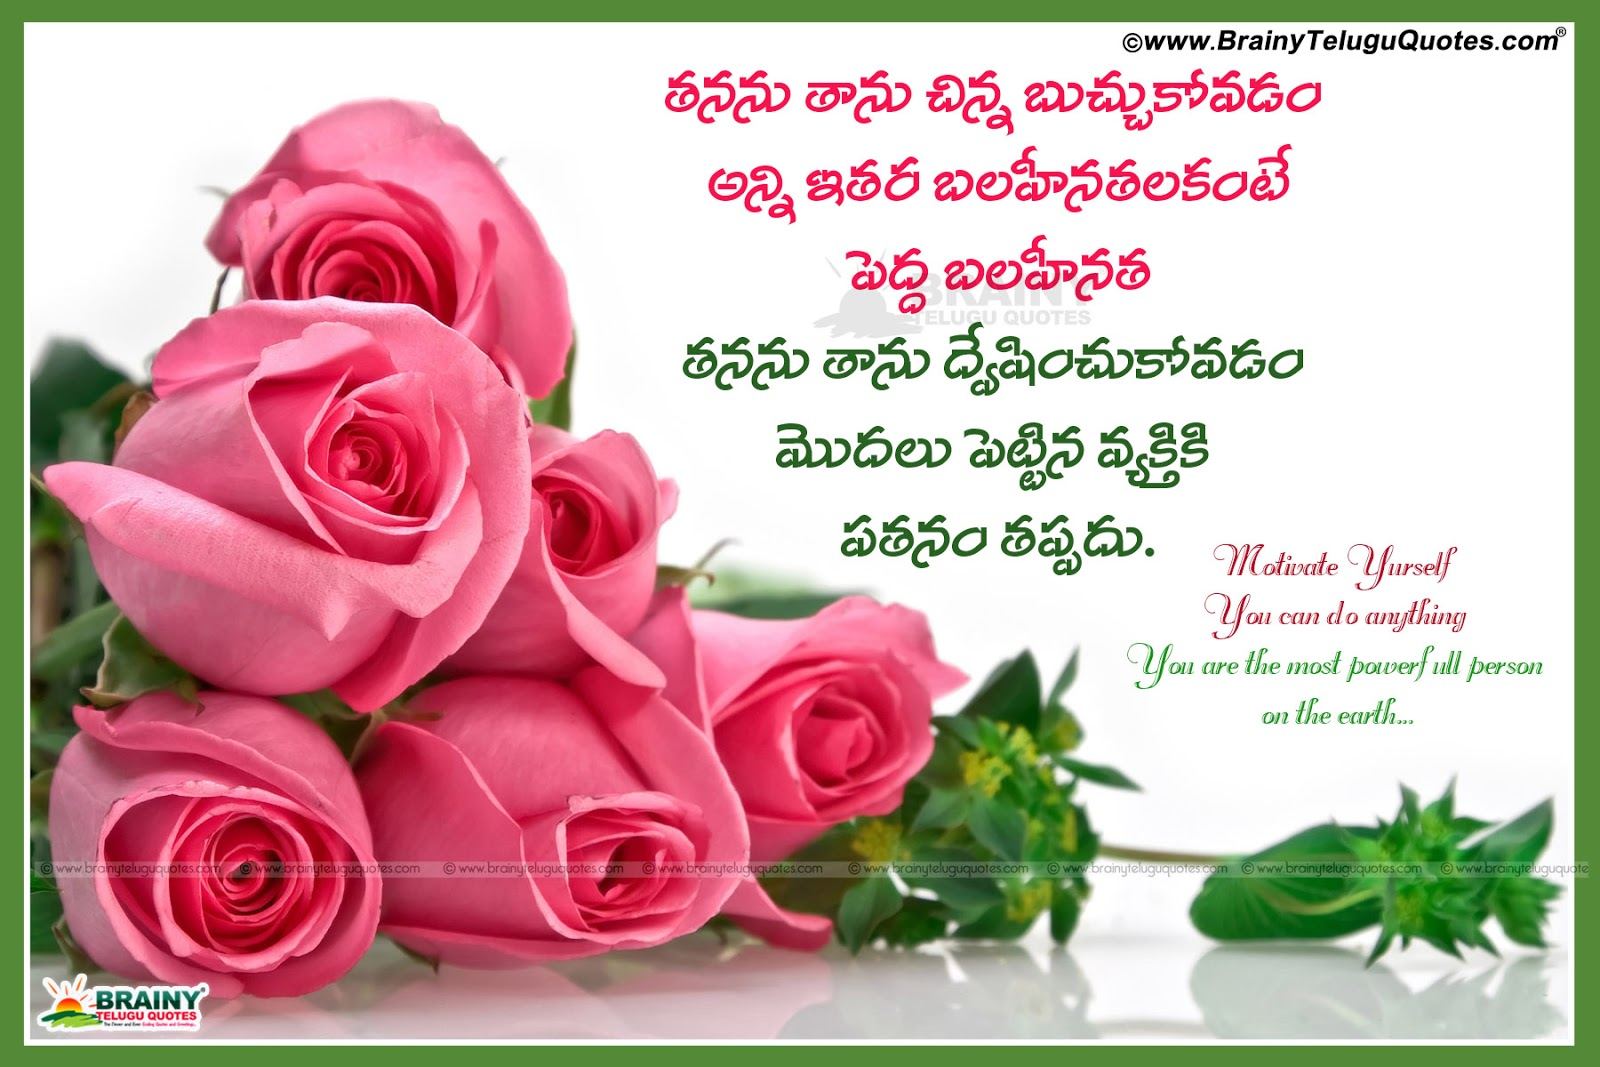 Beautiful Flowers Images With Quotes In Telugu Wallpapersjpg